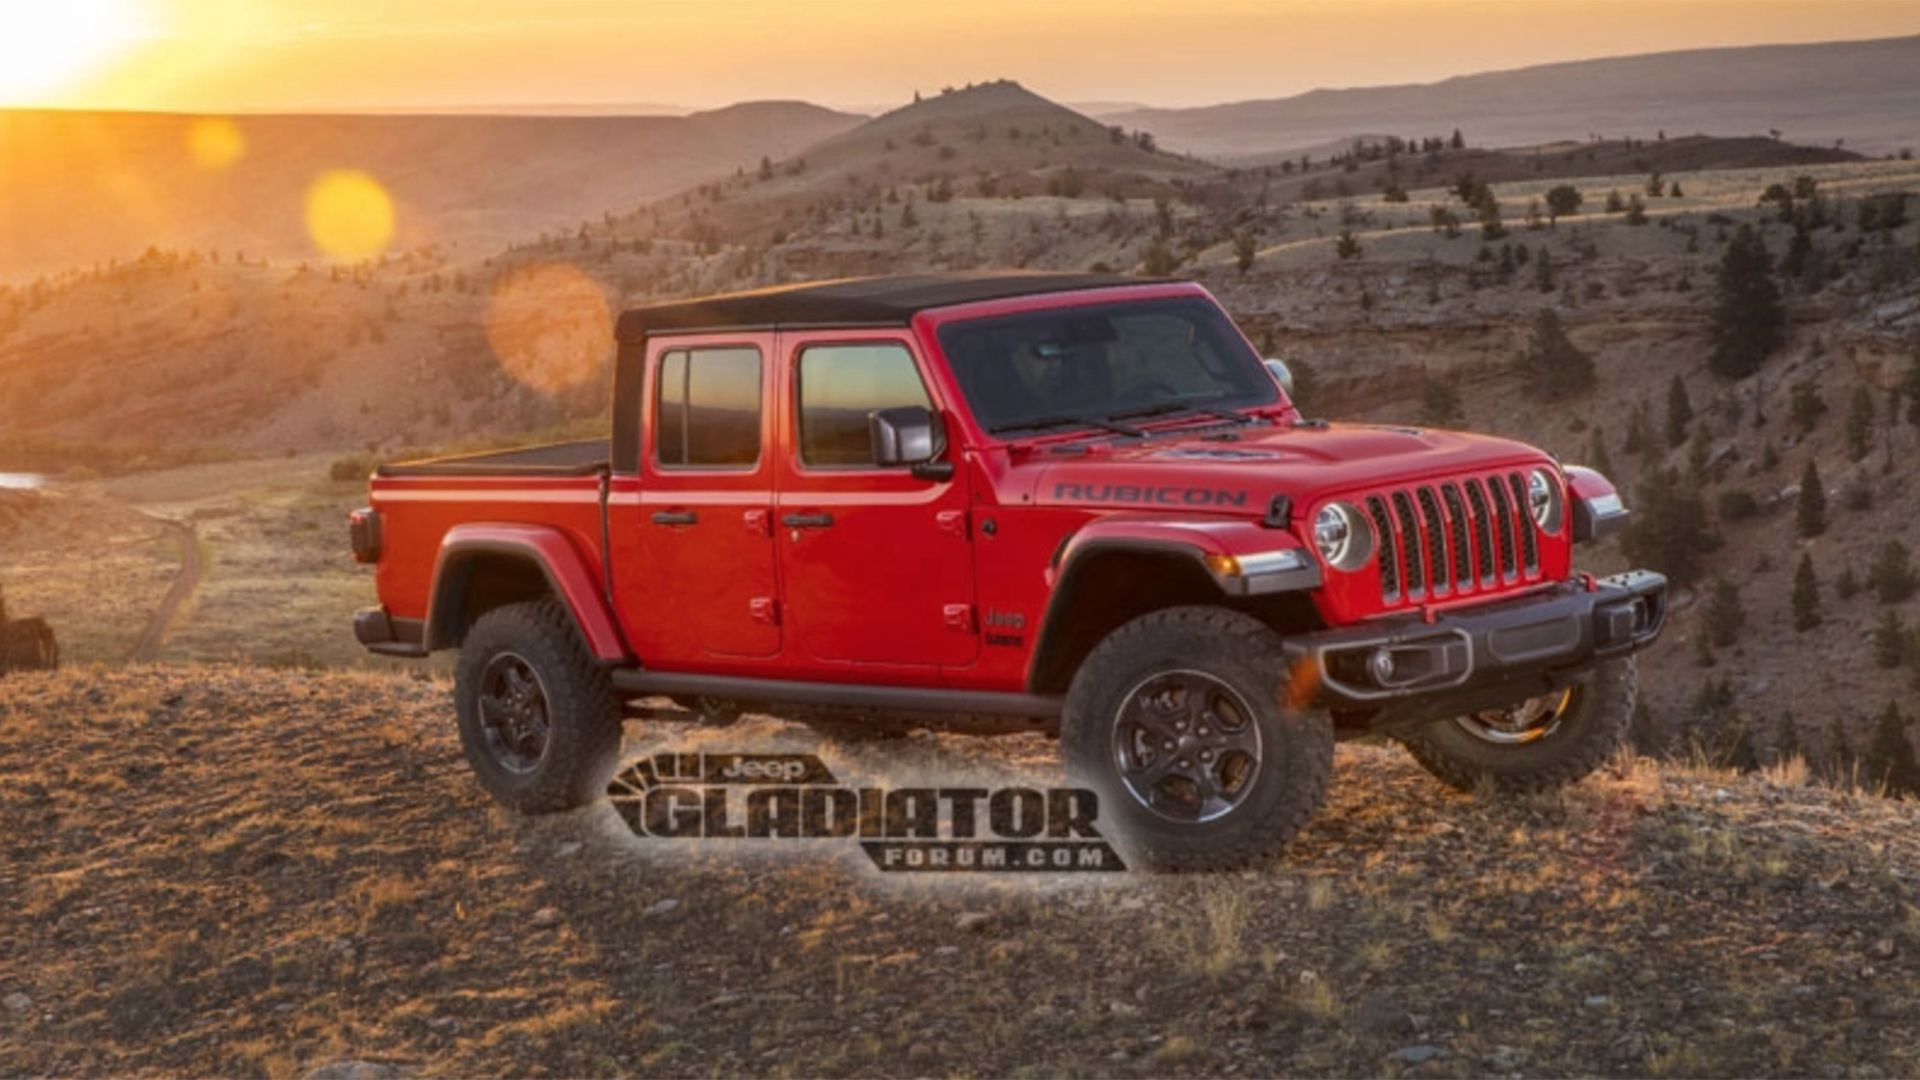 2020 Jeep Gladiator Pickup Truck Images, Official Specs